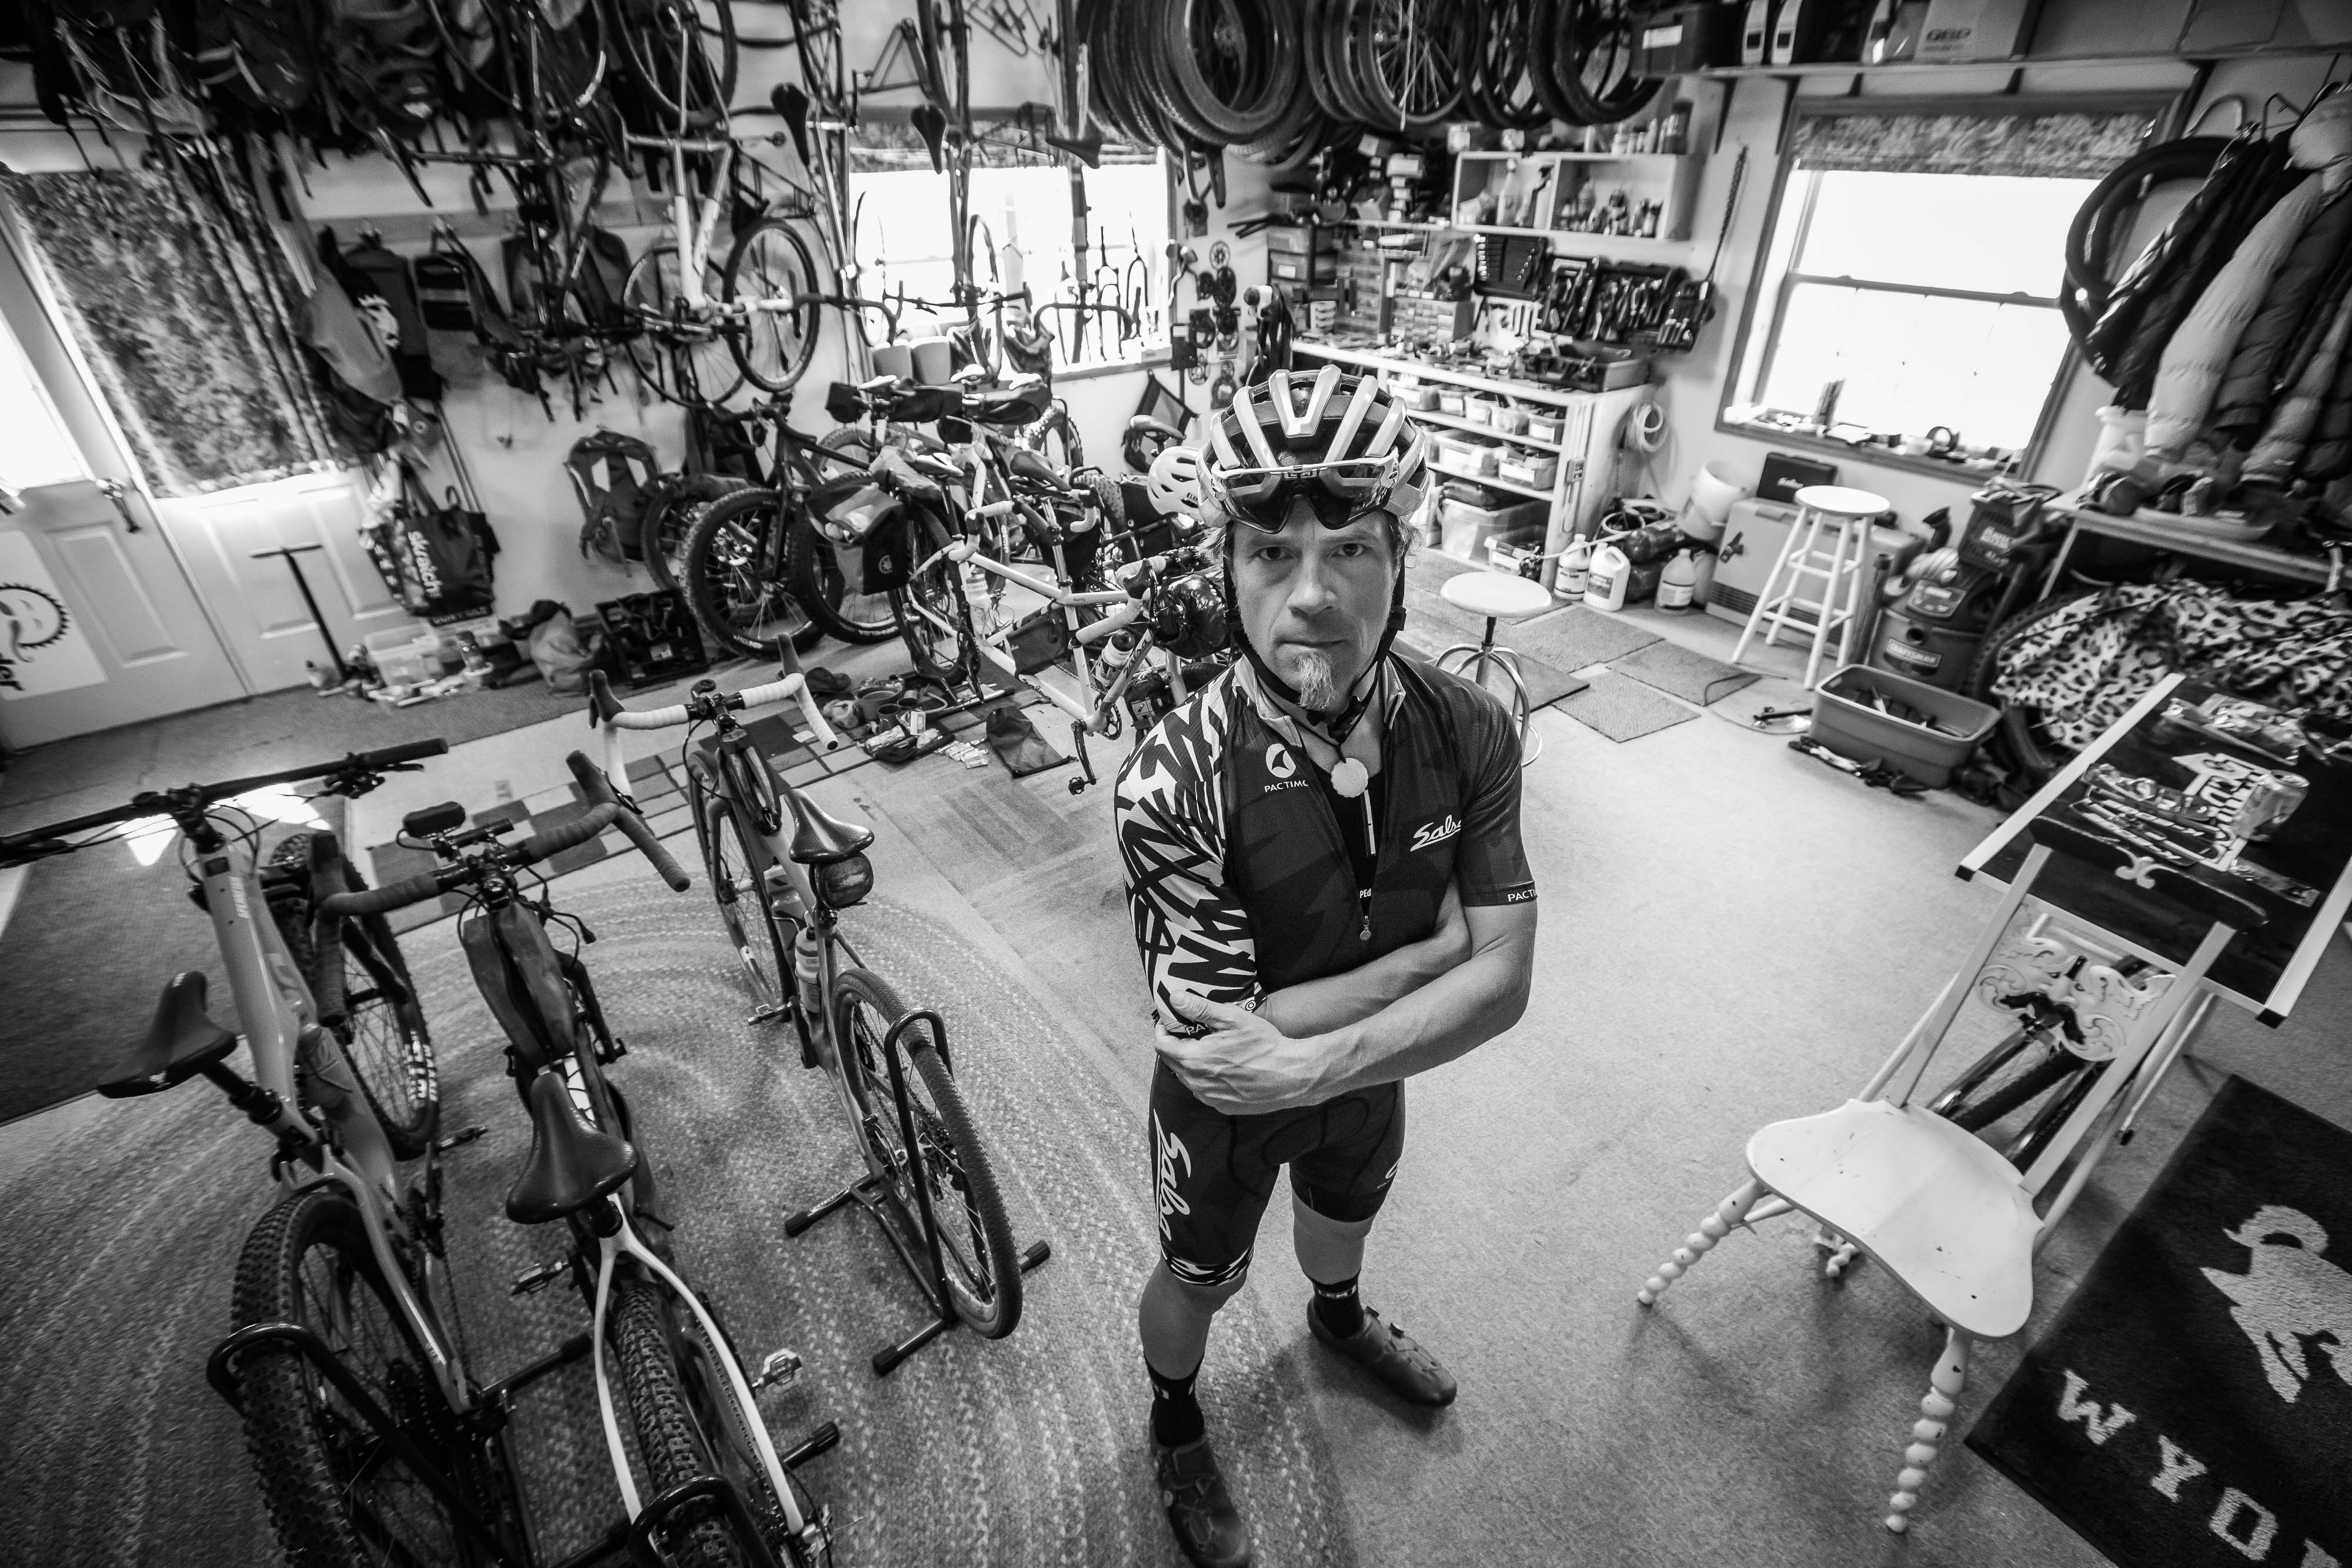 Jay Petervary poses for a portrait in his bicycle man cave - adventure photography commissions - by Jay Goodrich